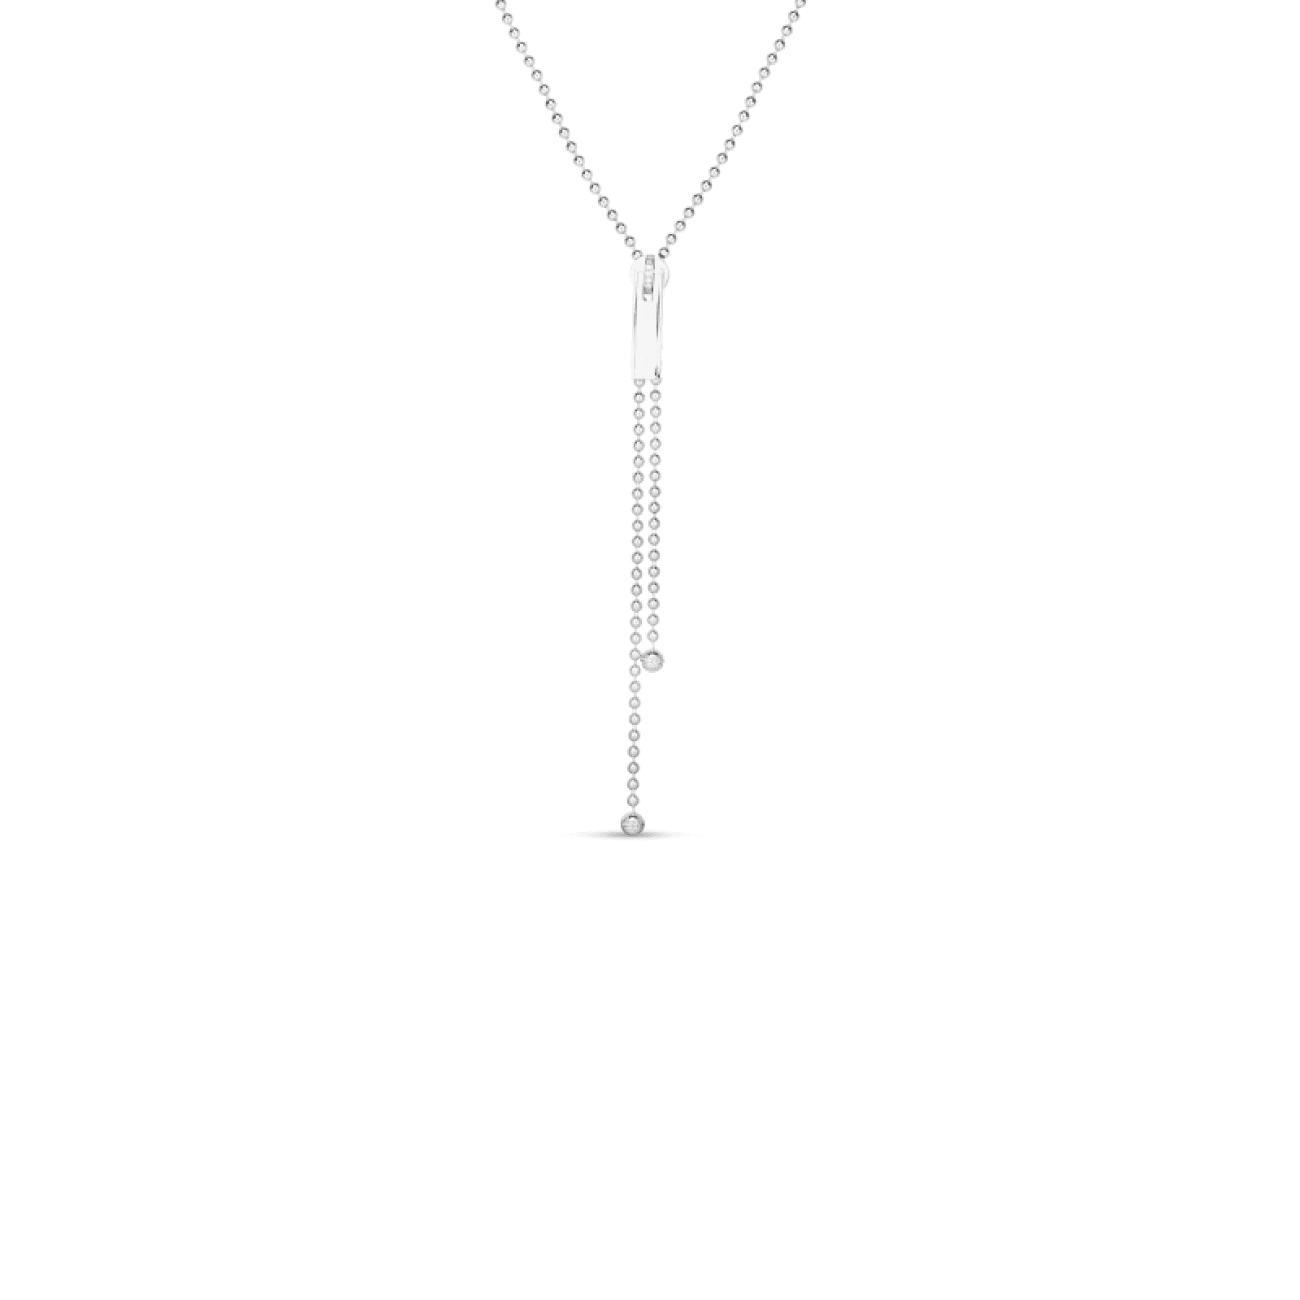 Roberto Coin Jewelry - 18K 33 LONG ZIPPER NECKLACE W. DIAMOND ACCENT ZIPPER PULL | Manfredi Jewels